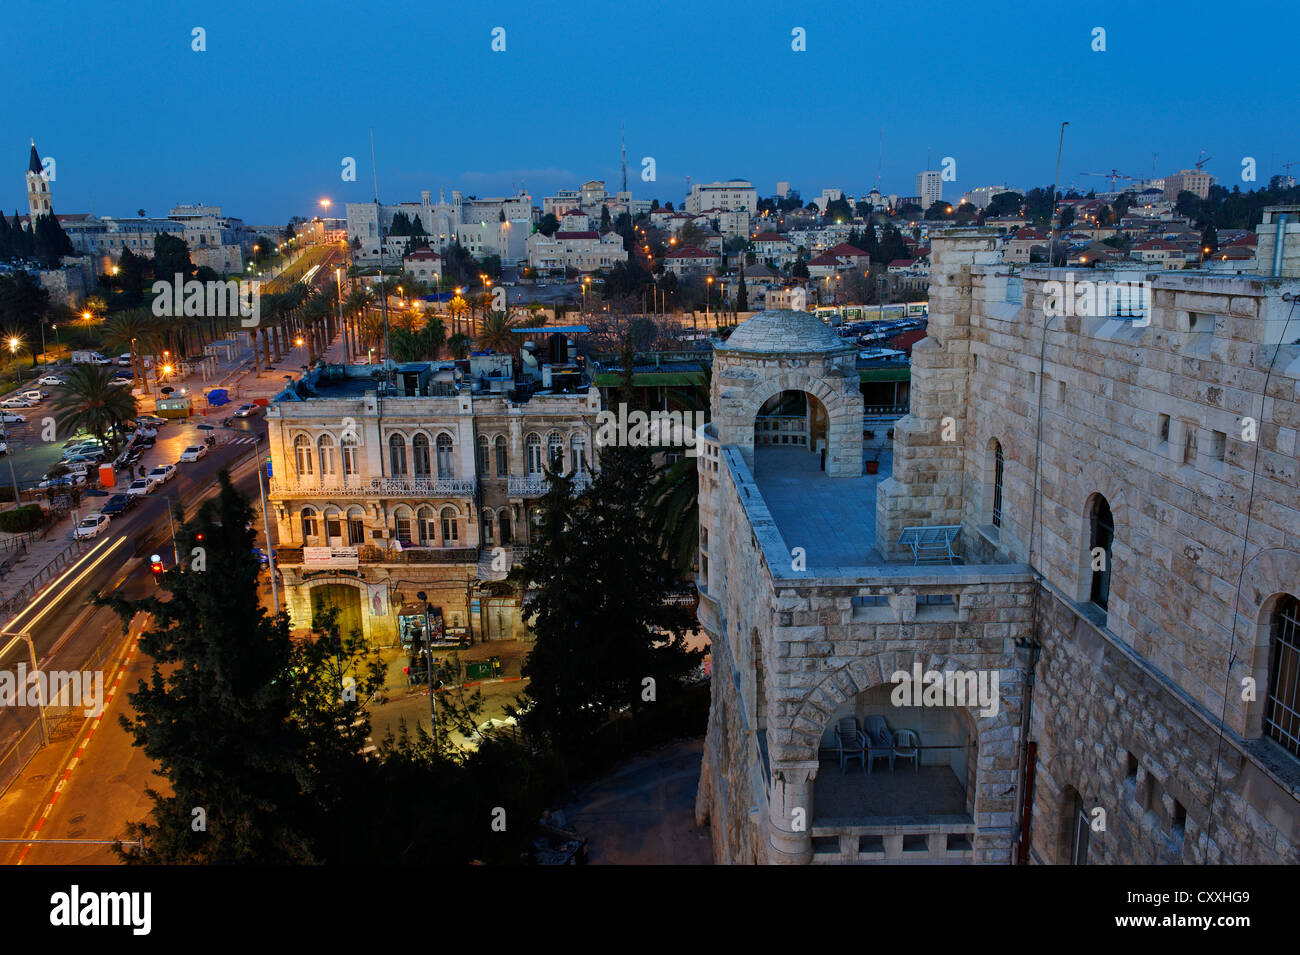 Dusk, Old City, from Paulus guest house, Jerusalem, Israel, Middle East Stock Photo